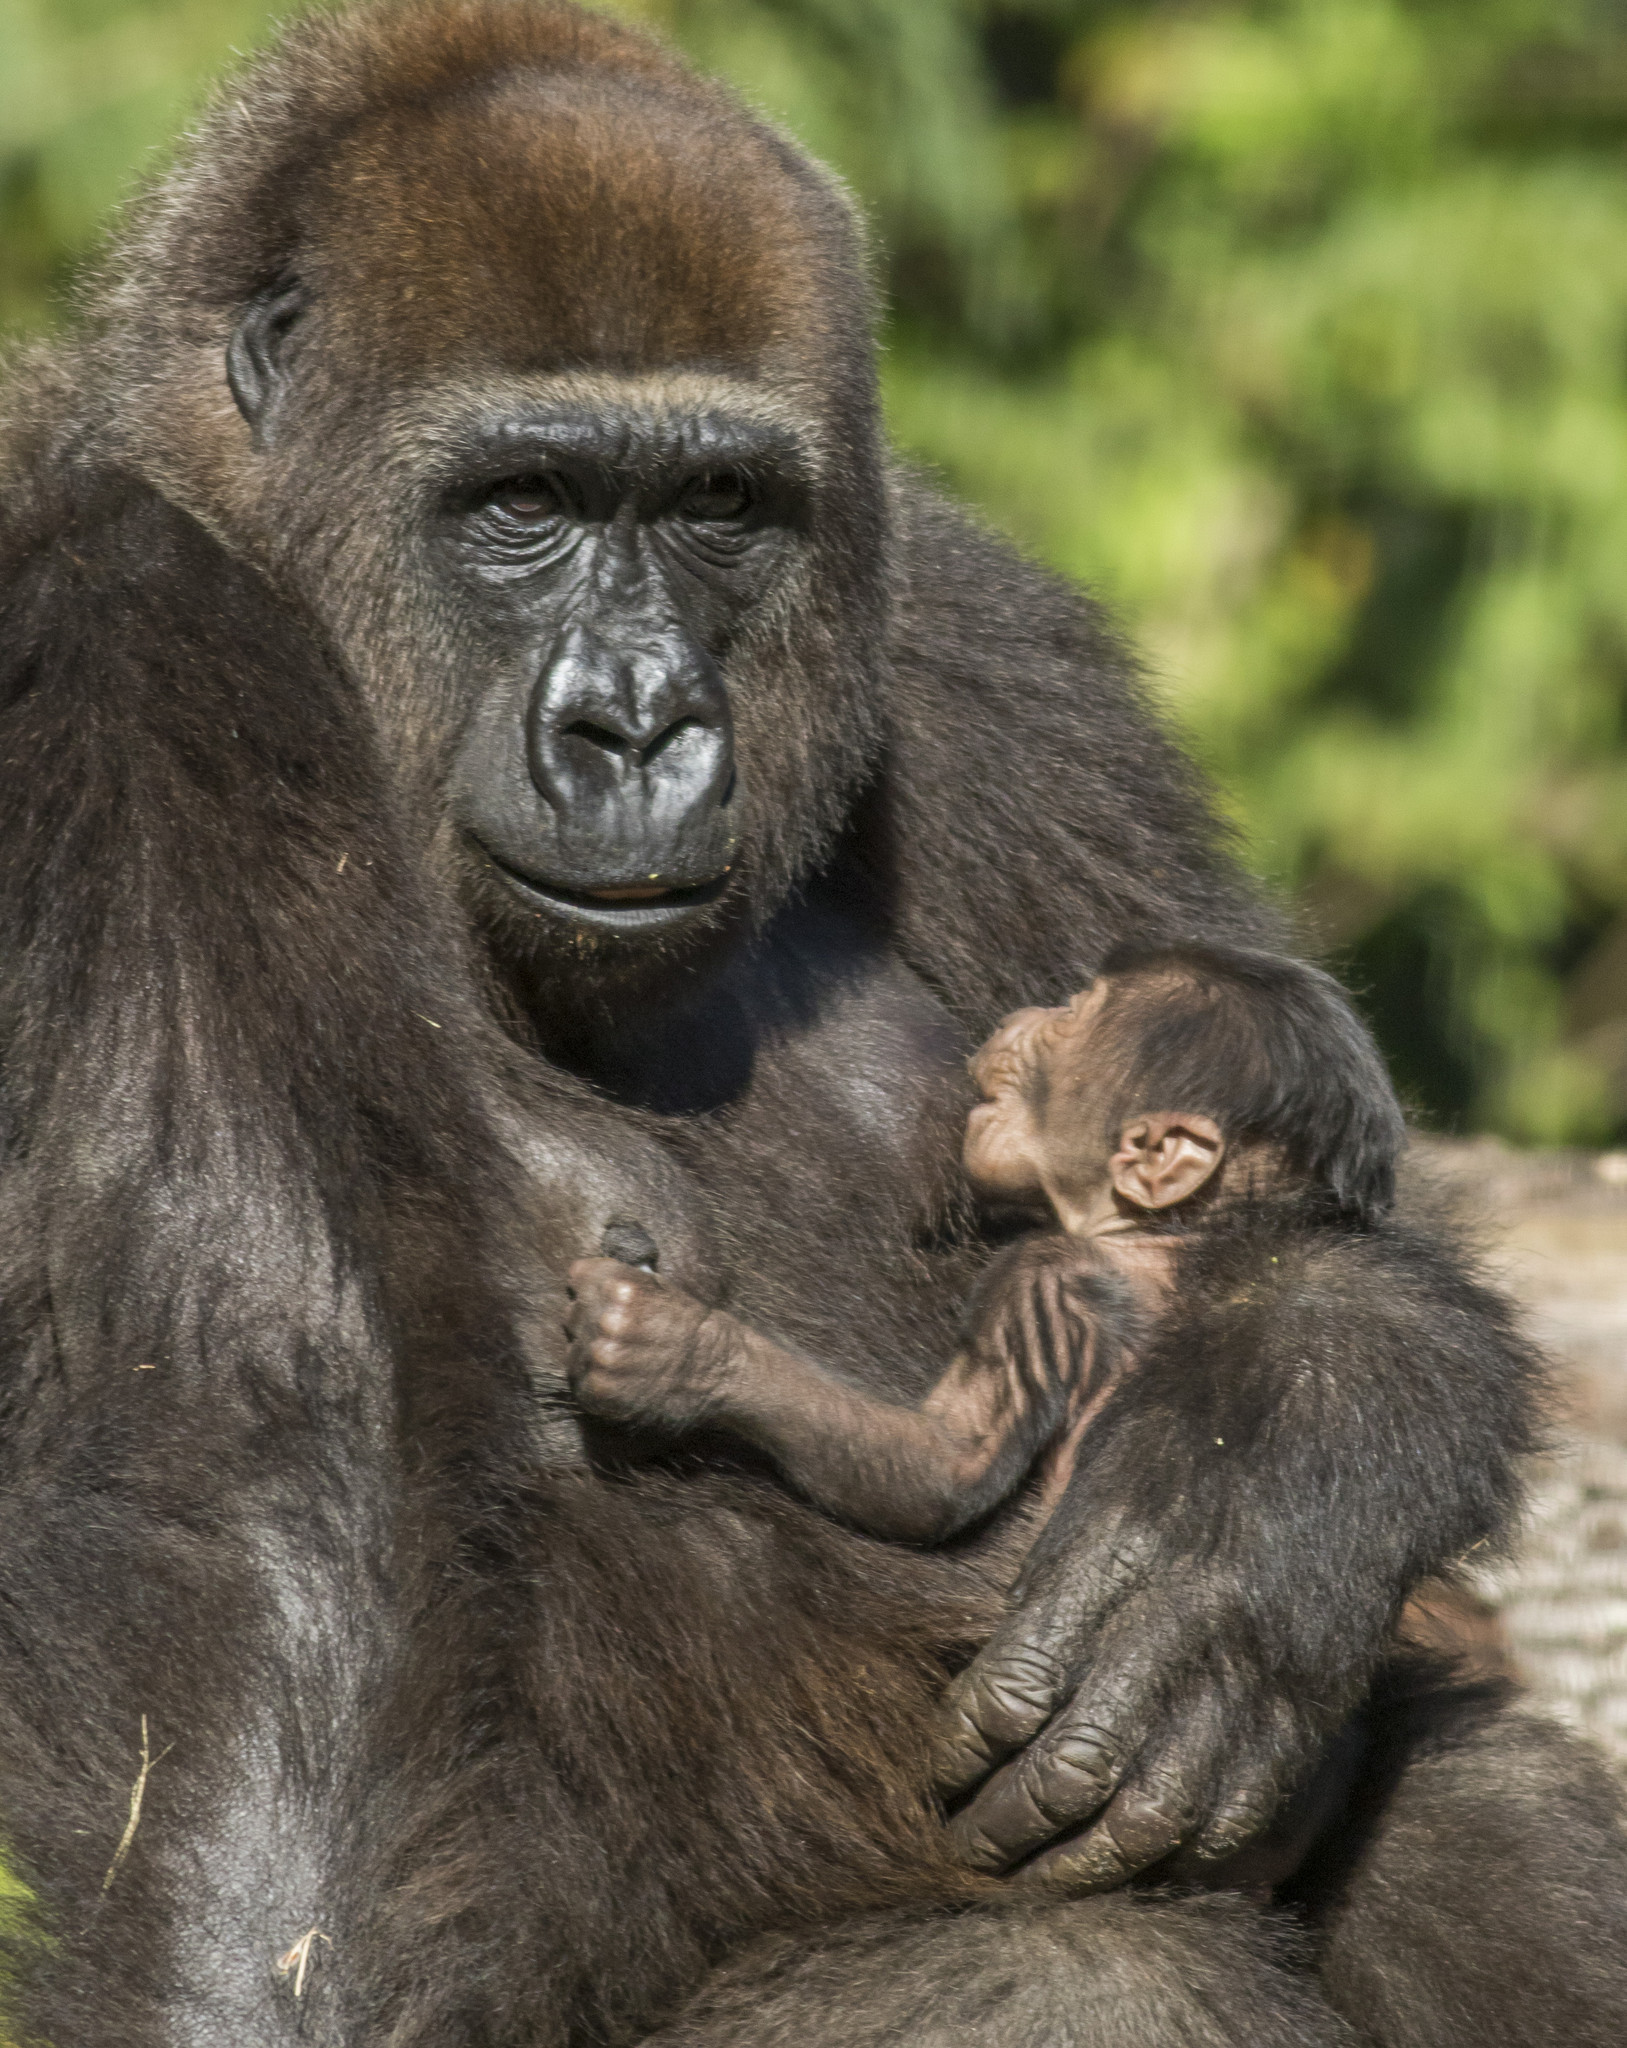 center for great apes in rural hardee county offering primate 101